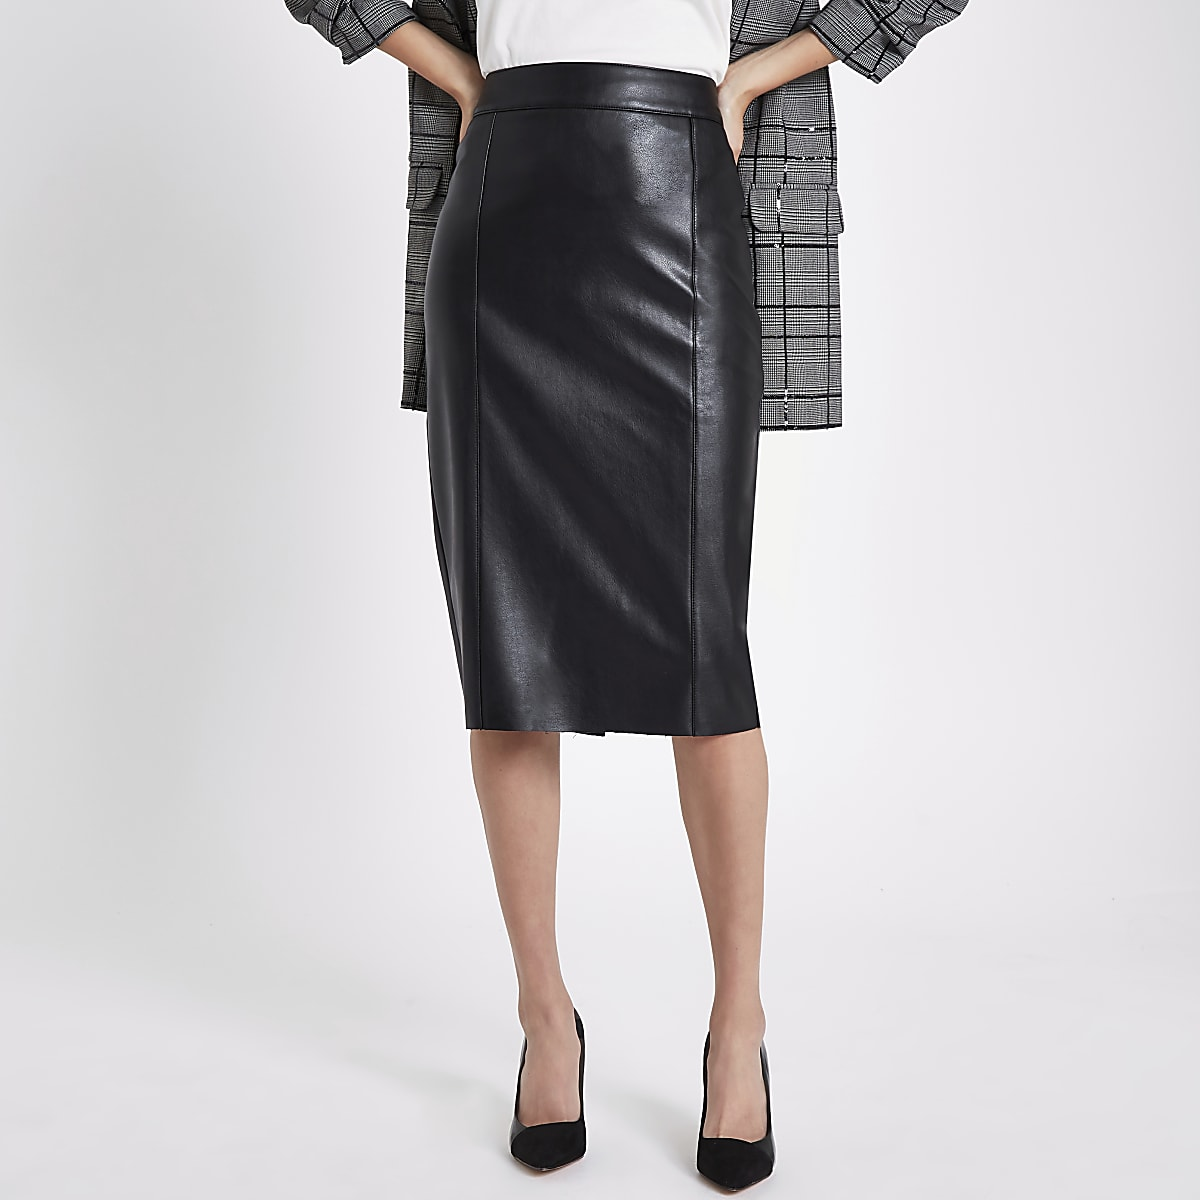 a06dee120 Black faux leather pencil skirt - Midi Skirts - Skirts - women